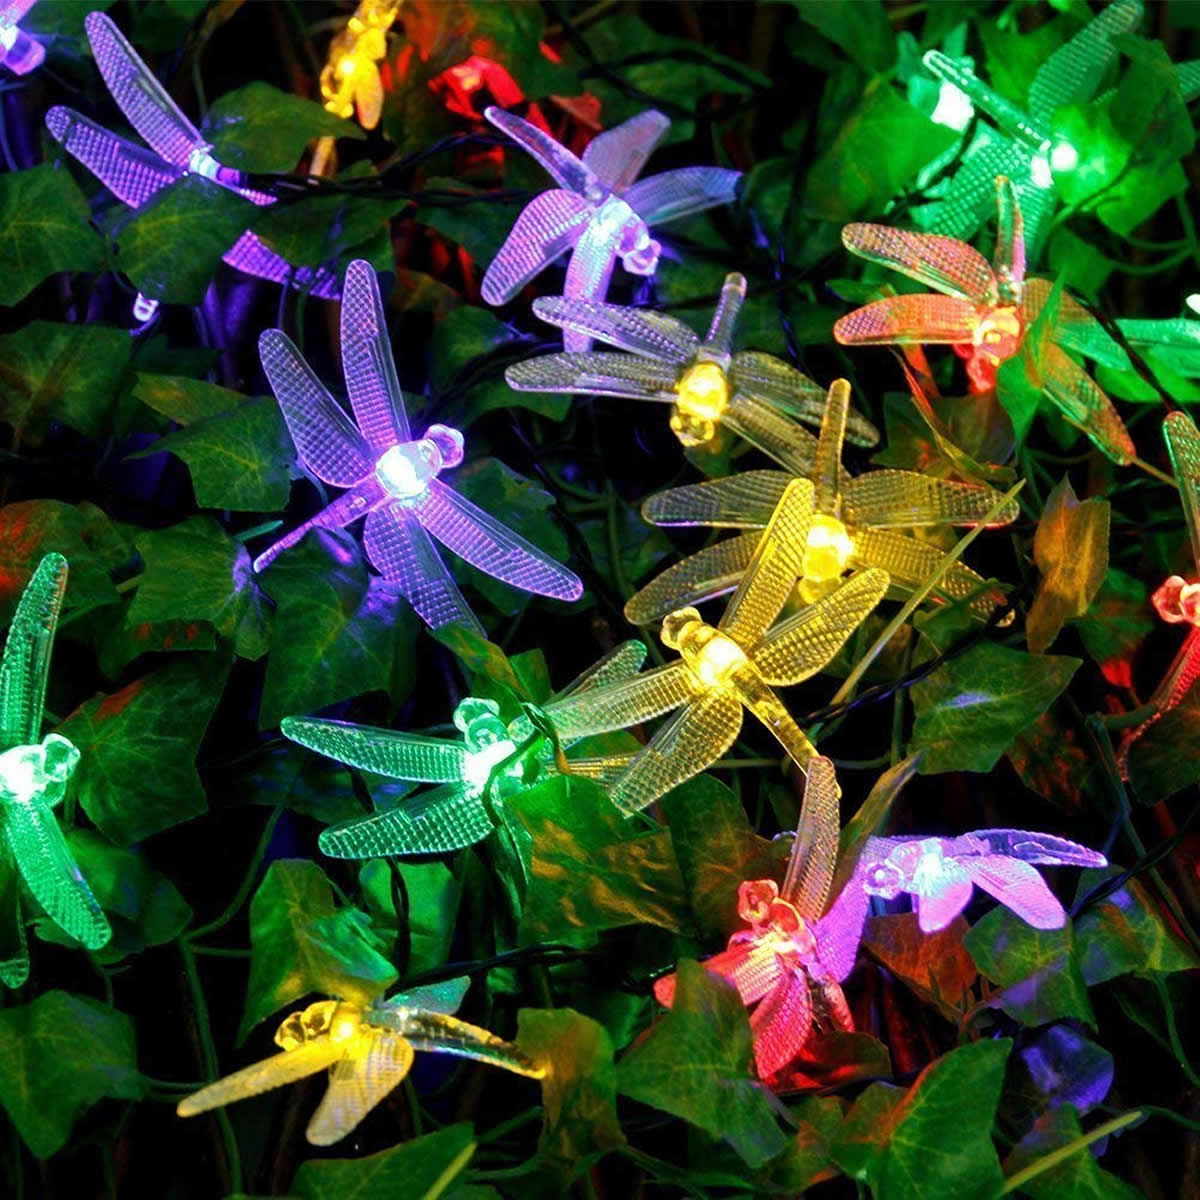 Solar Powered DragonFly LED Light String - Multi-Color